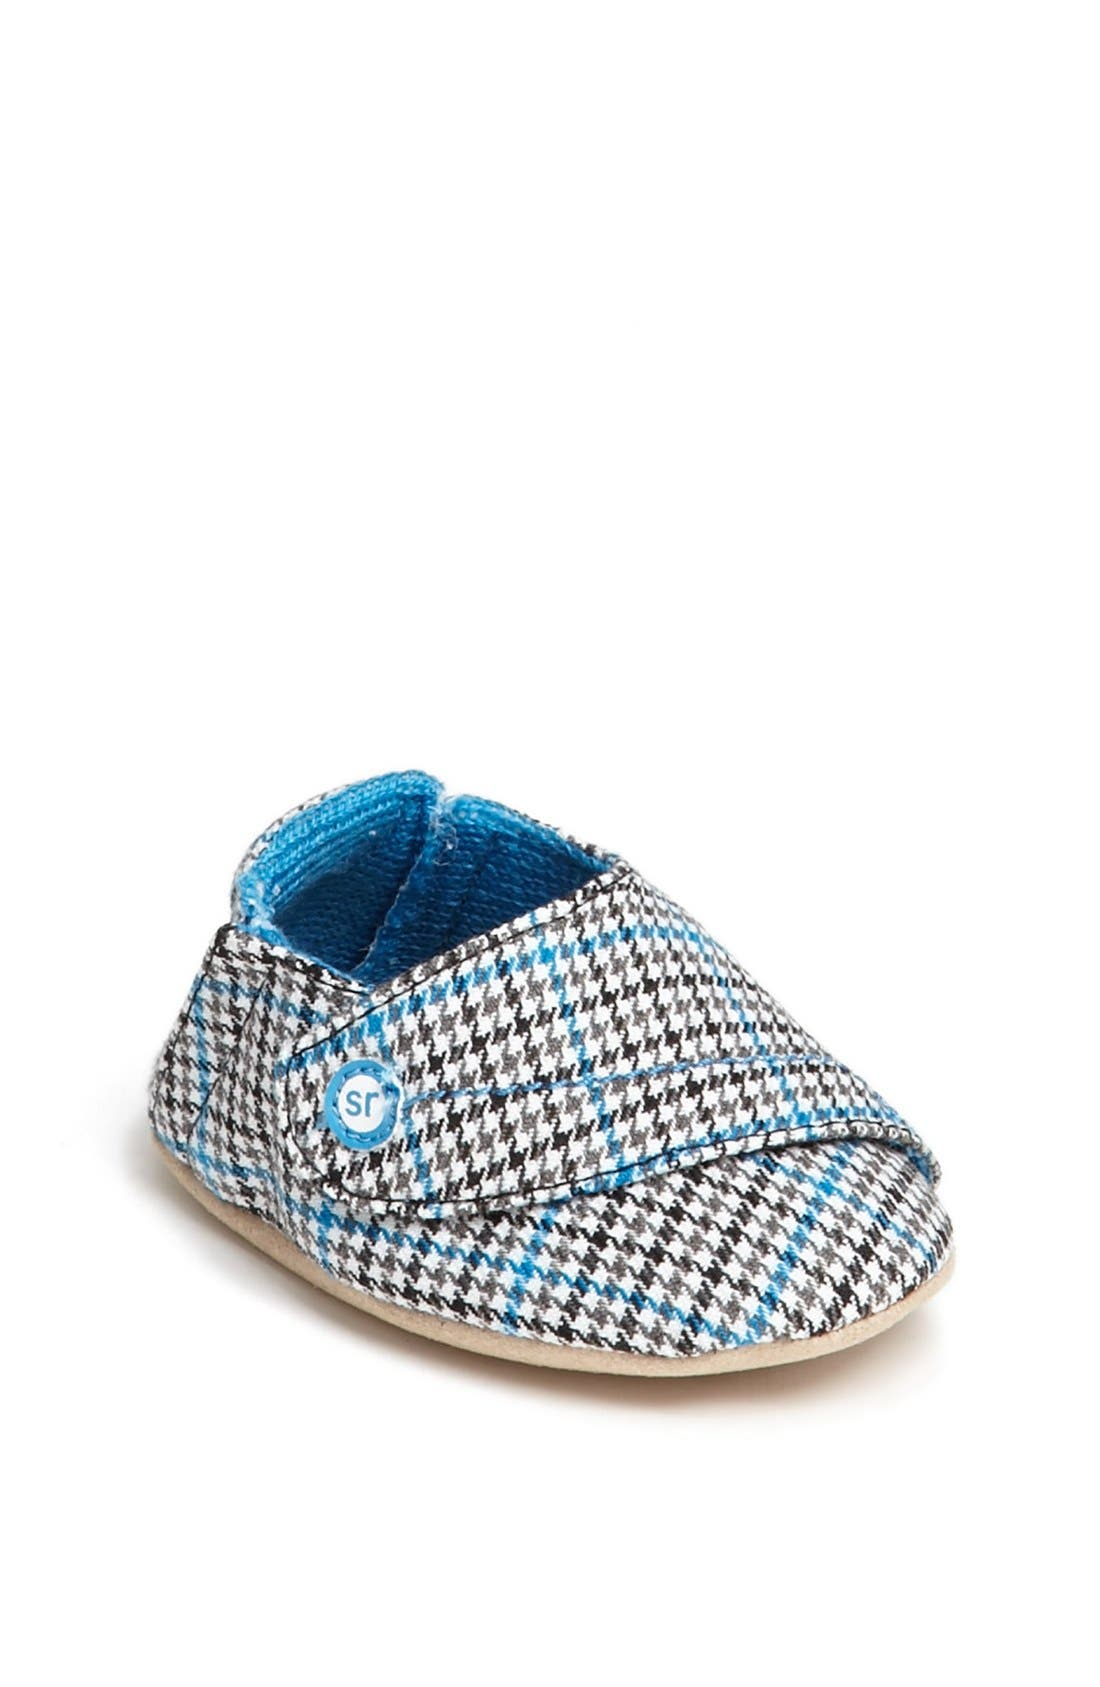 Alternate Image 1 Selected - Stride Rite 'Hip Houndstooth' Crib Shoe (Baby Boys)